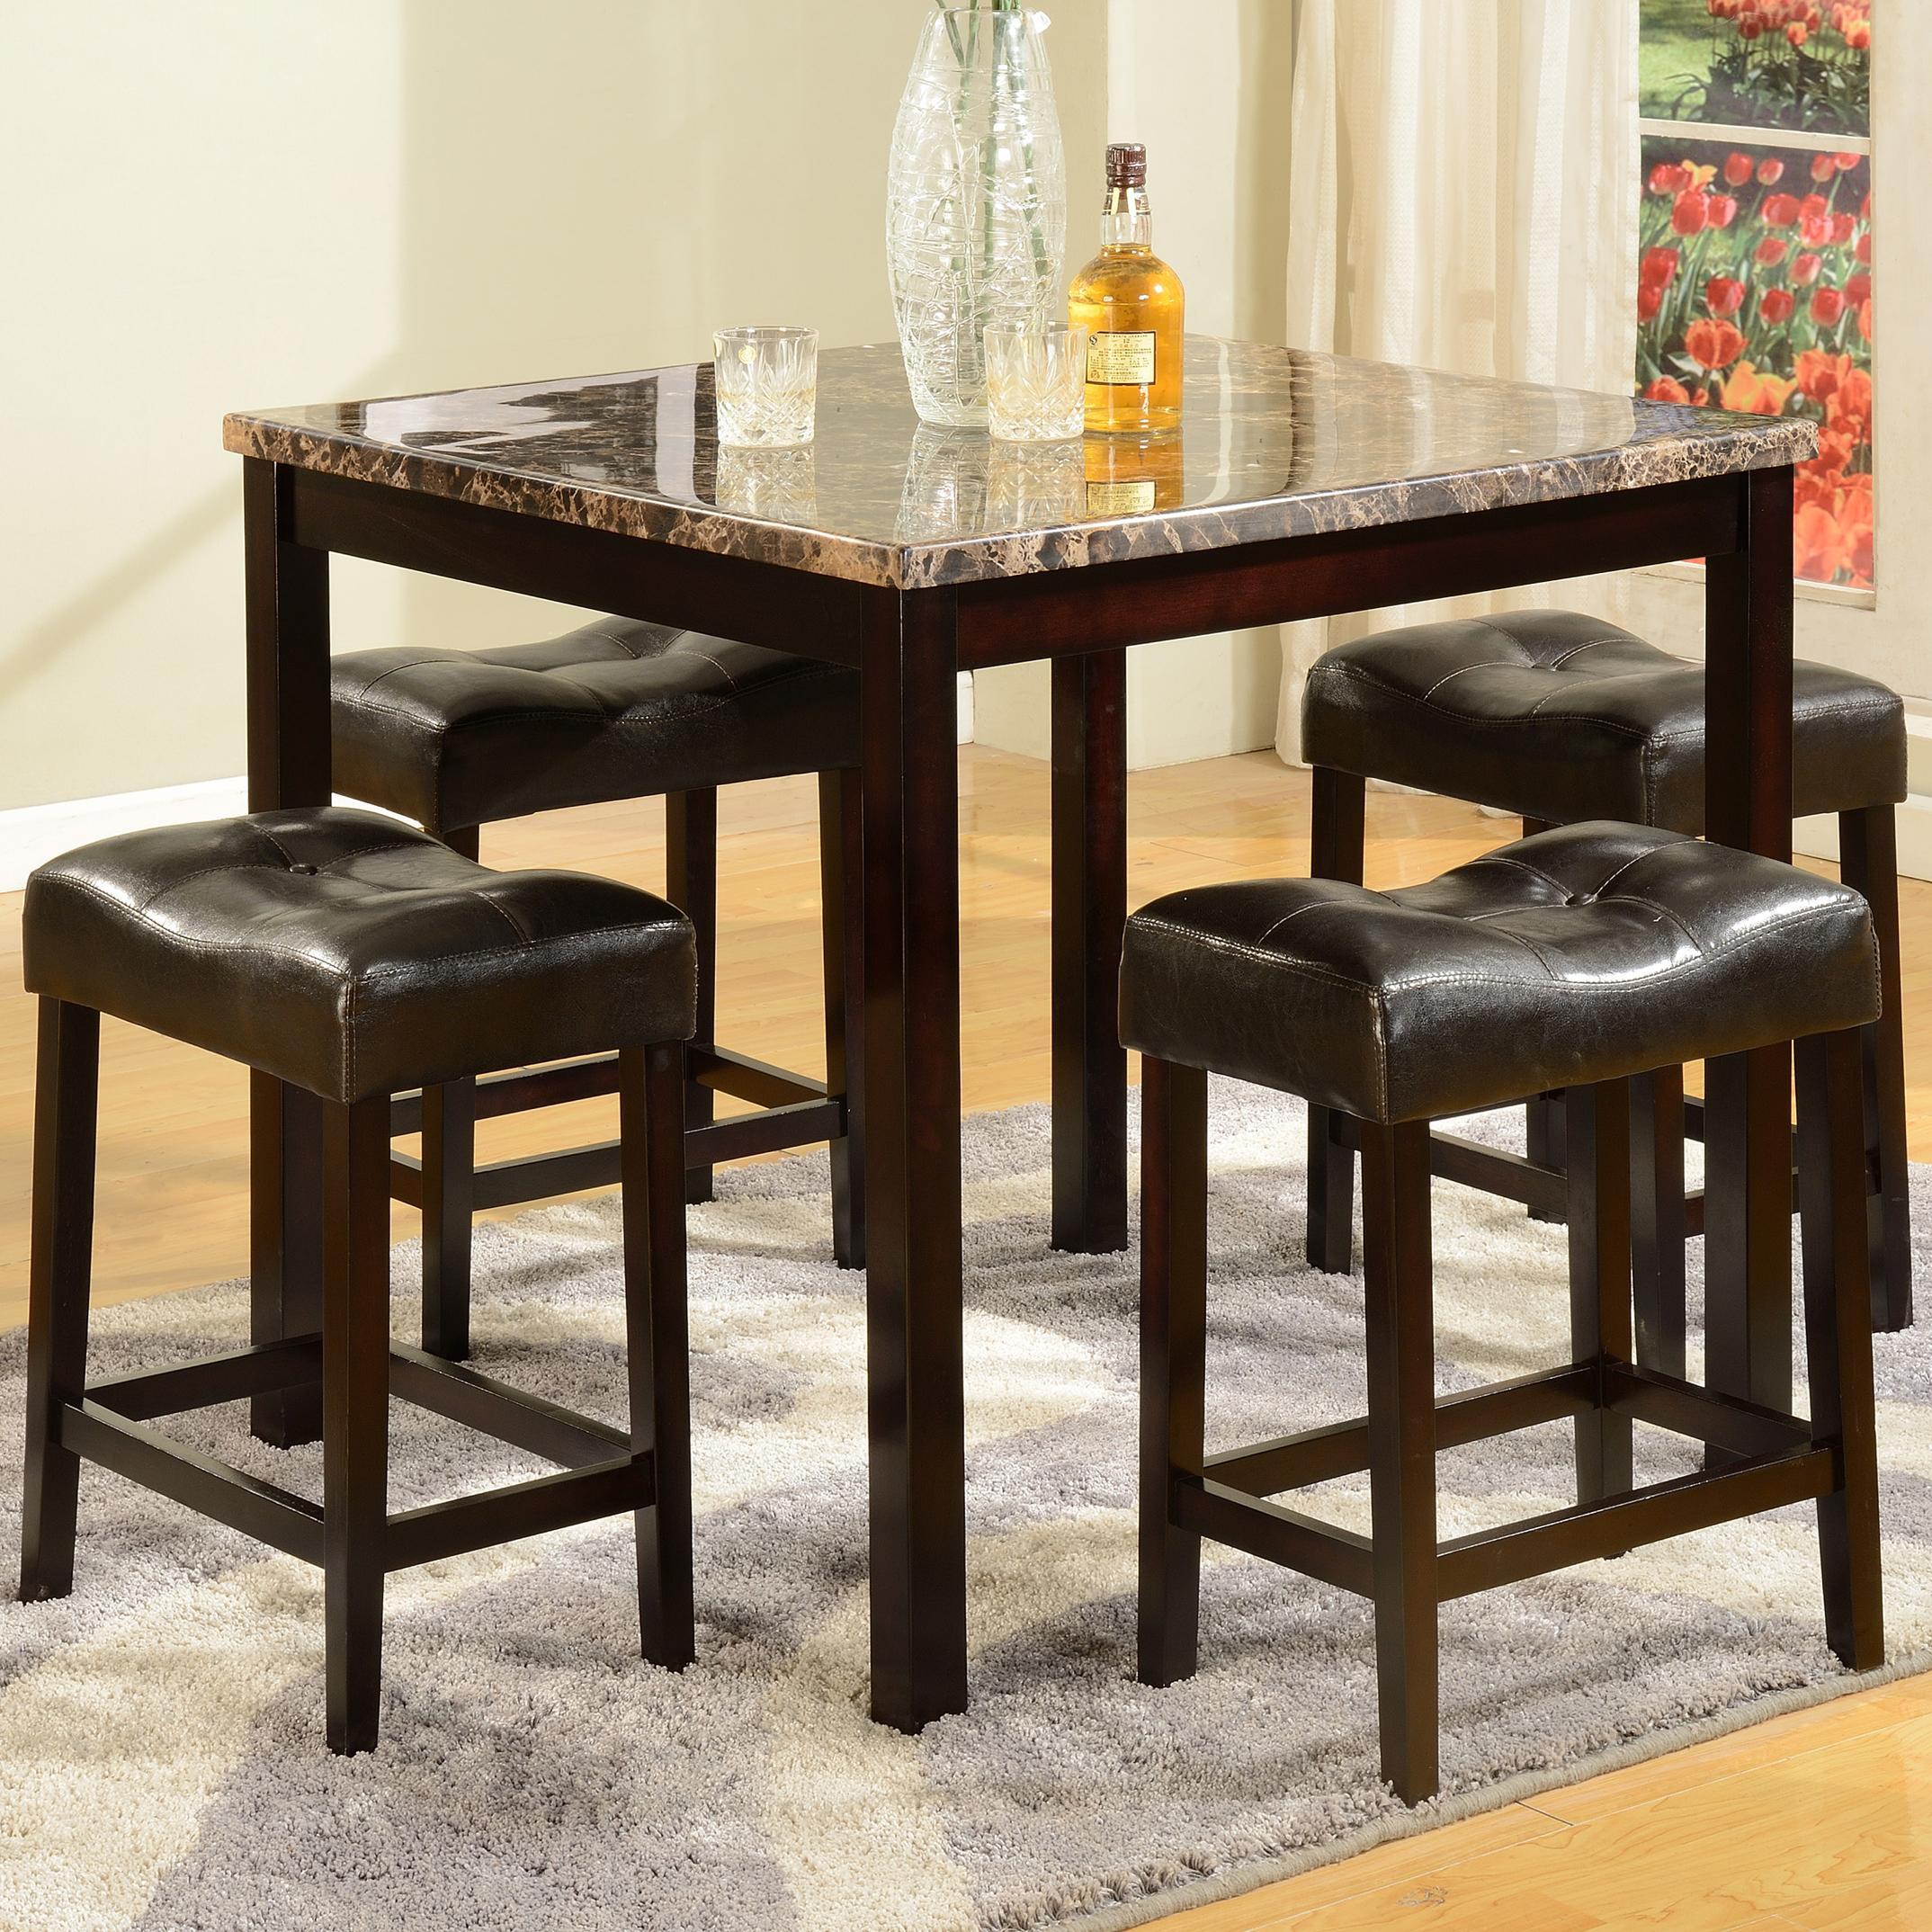 Bar Table With Chairs Kinsey 5 Piece Faux Marble Counter Table Upholstered Stool Set By Crown Mark At Wayside Furniture